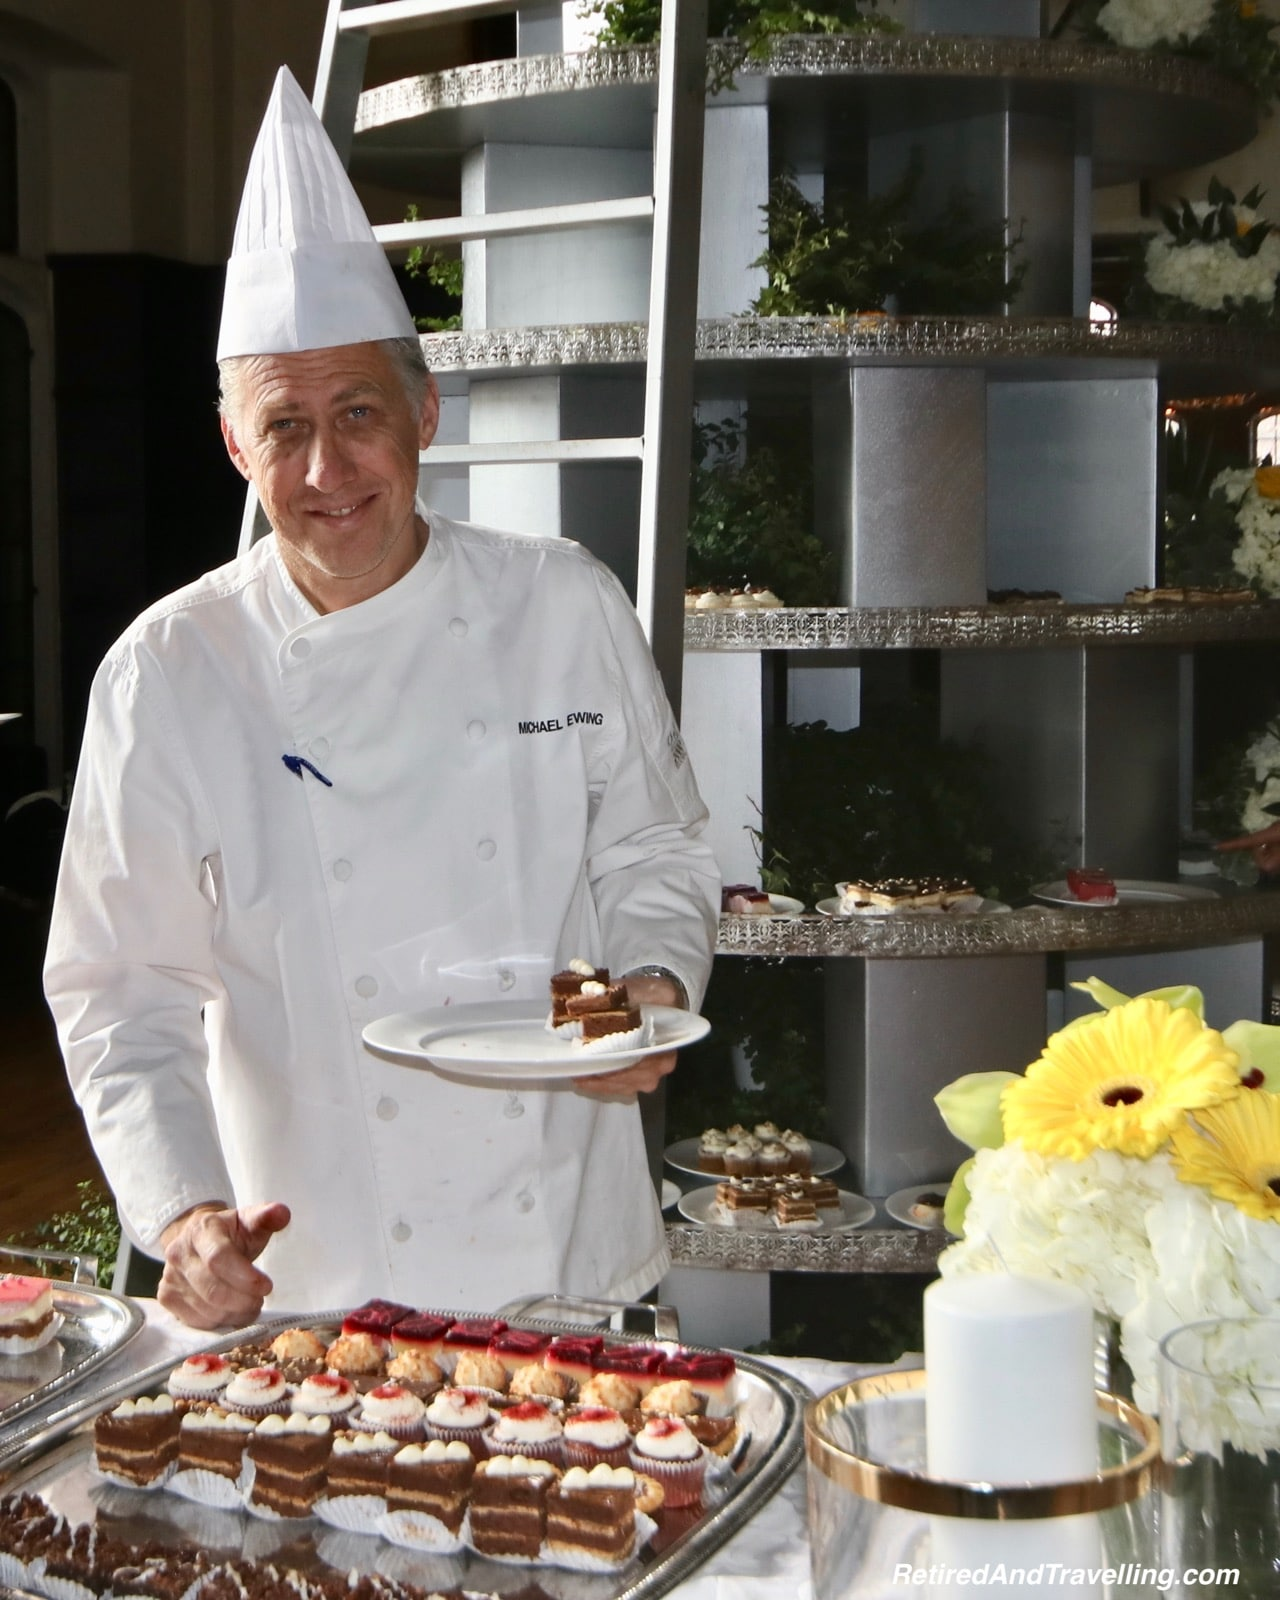 Casa Loma Afternoon Tea Sweets Tree With Chef Michael Ewing - Afternoon Tea At A Castle In Toronto.jpg